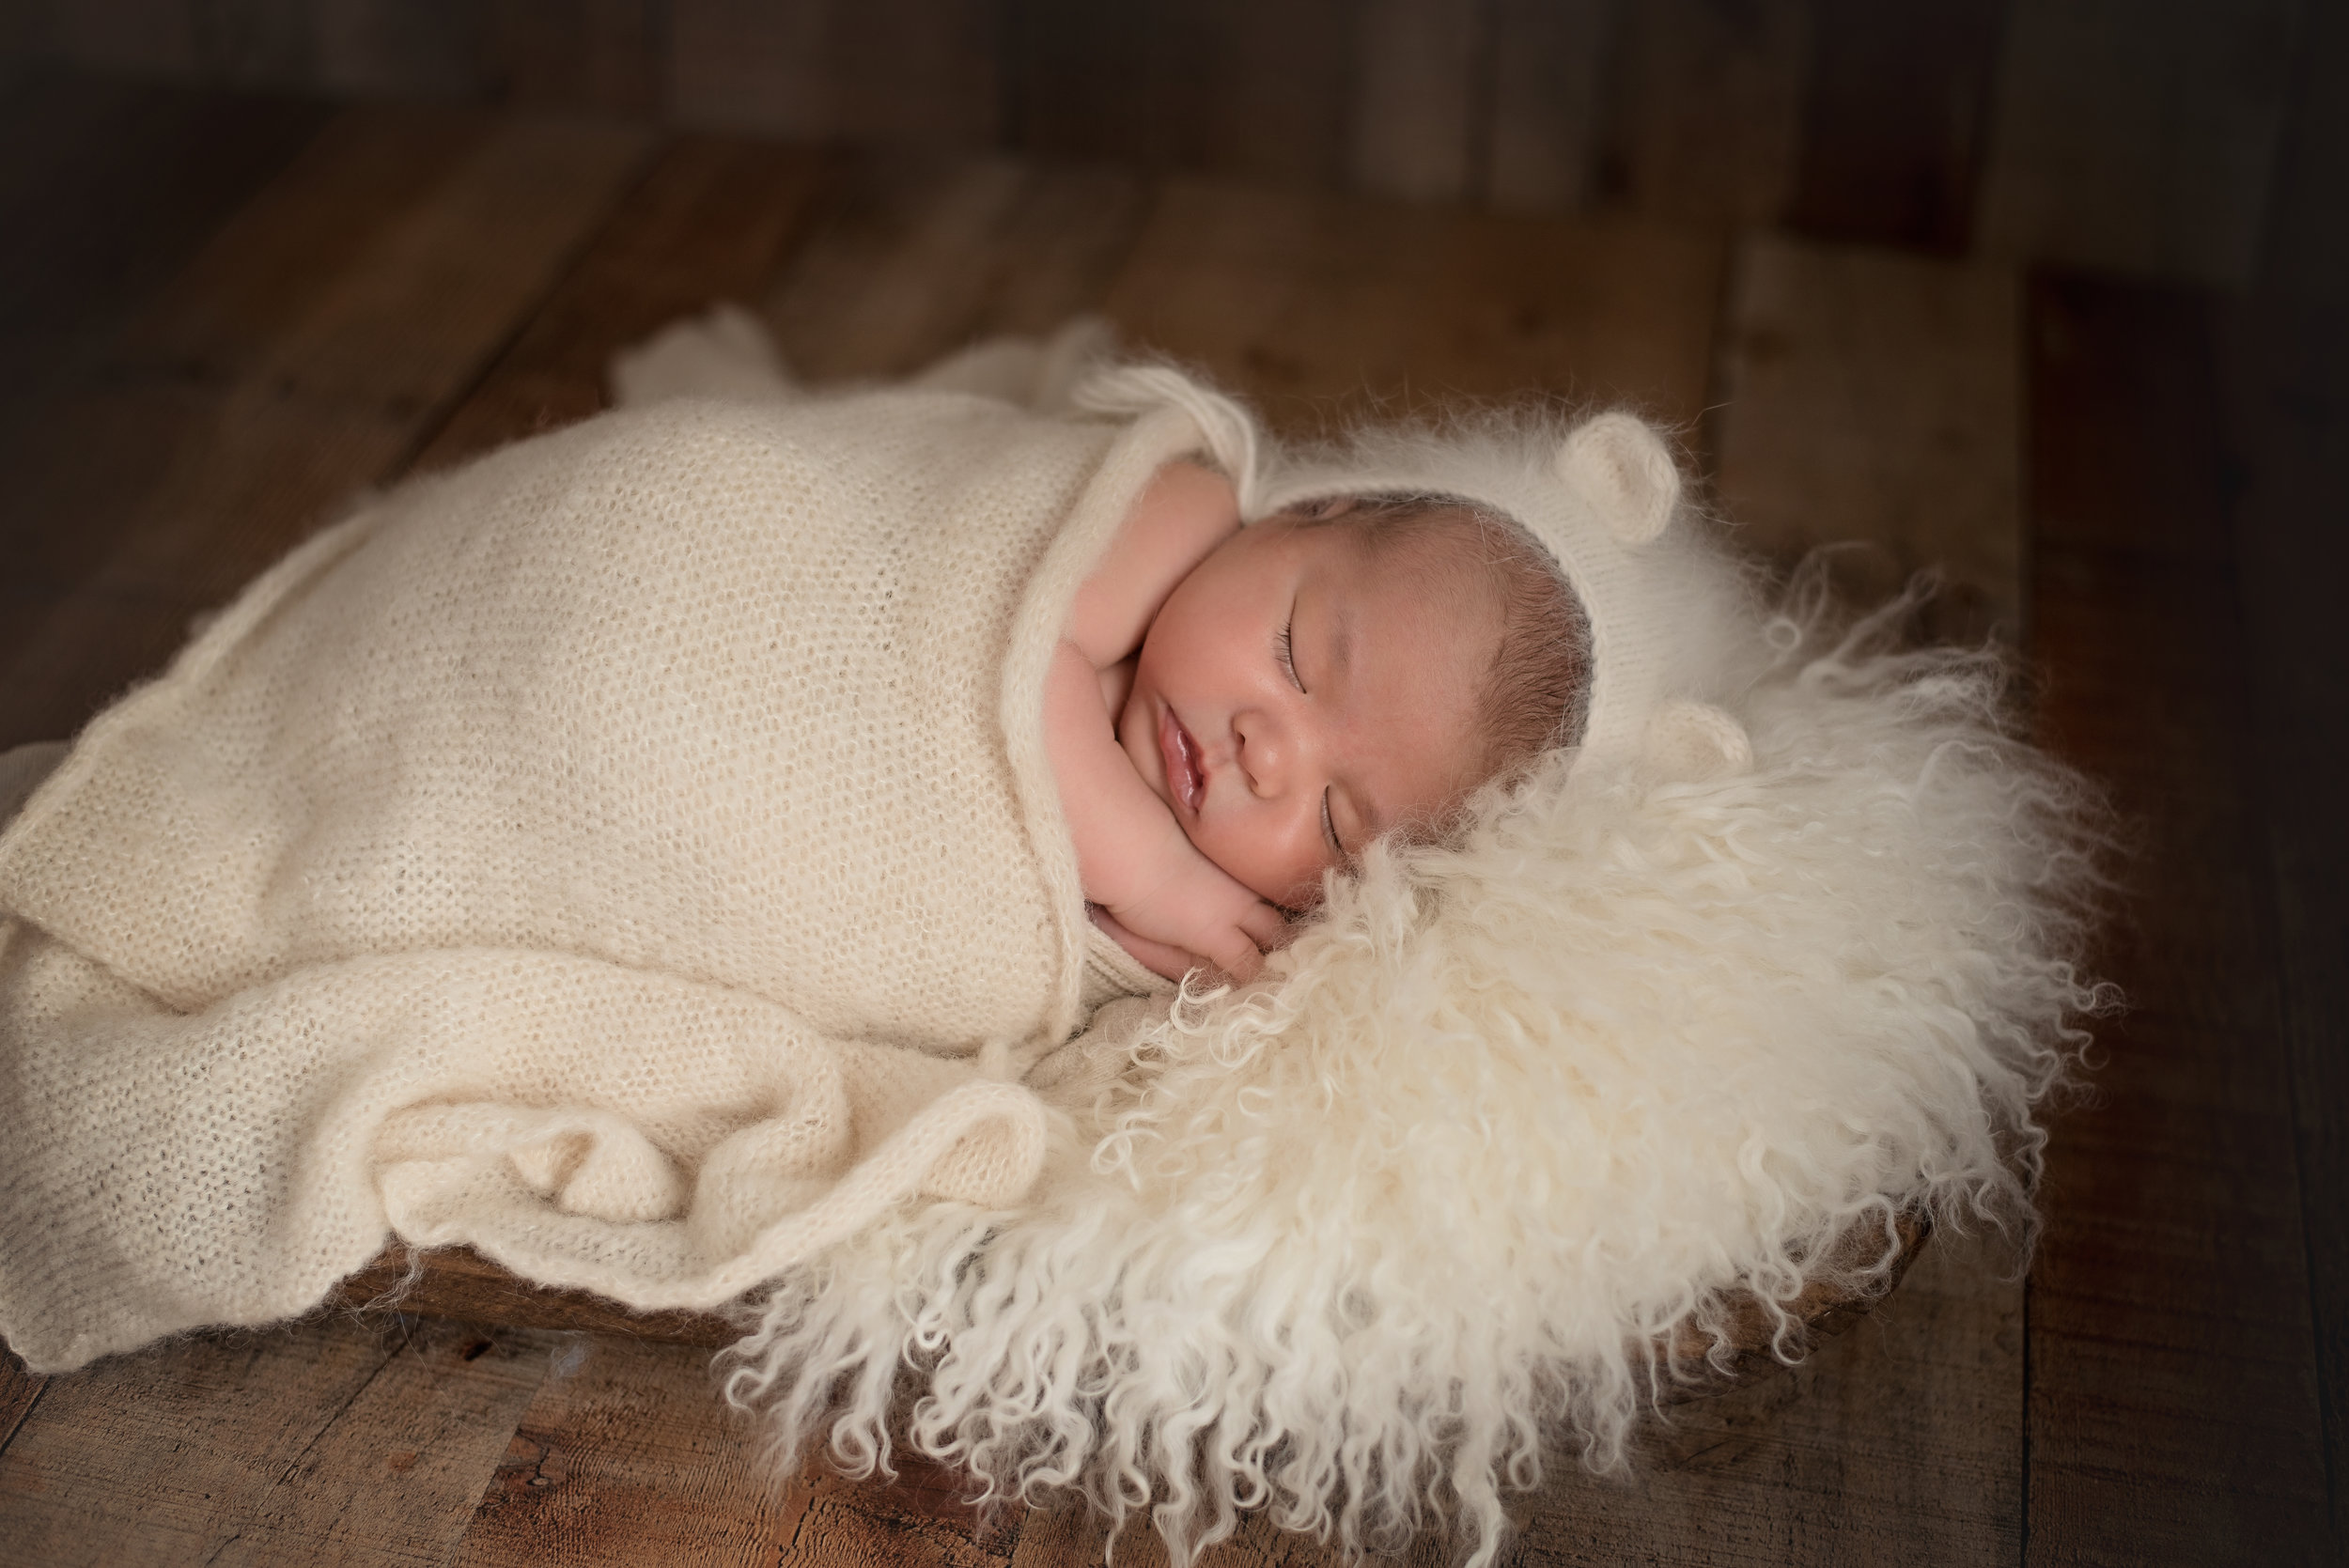 Northfield_Newborn_Photographer2.jpg